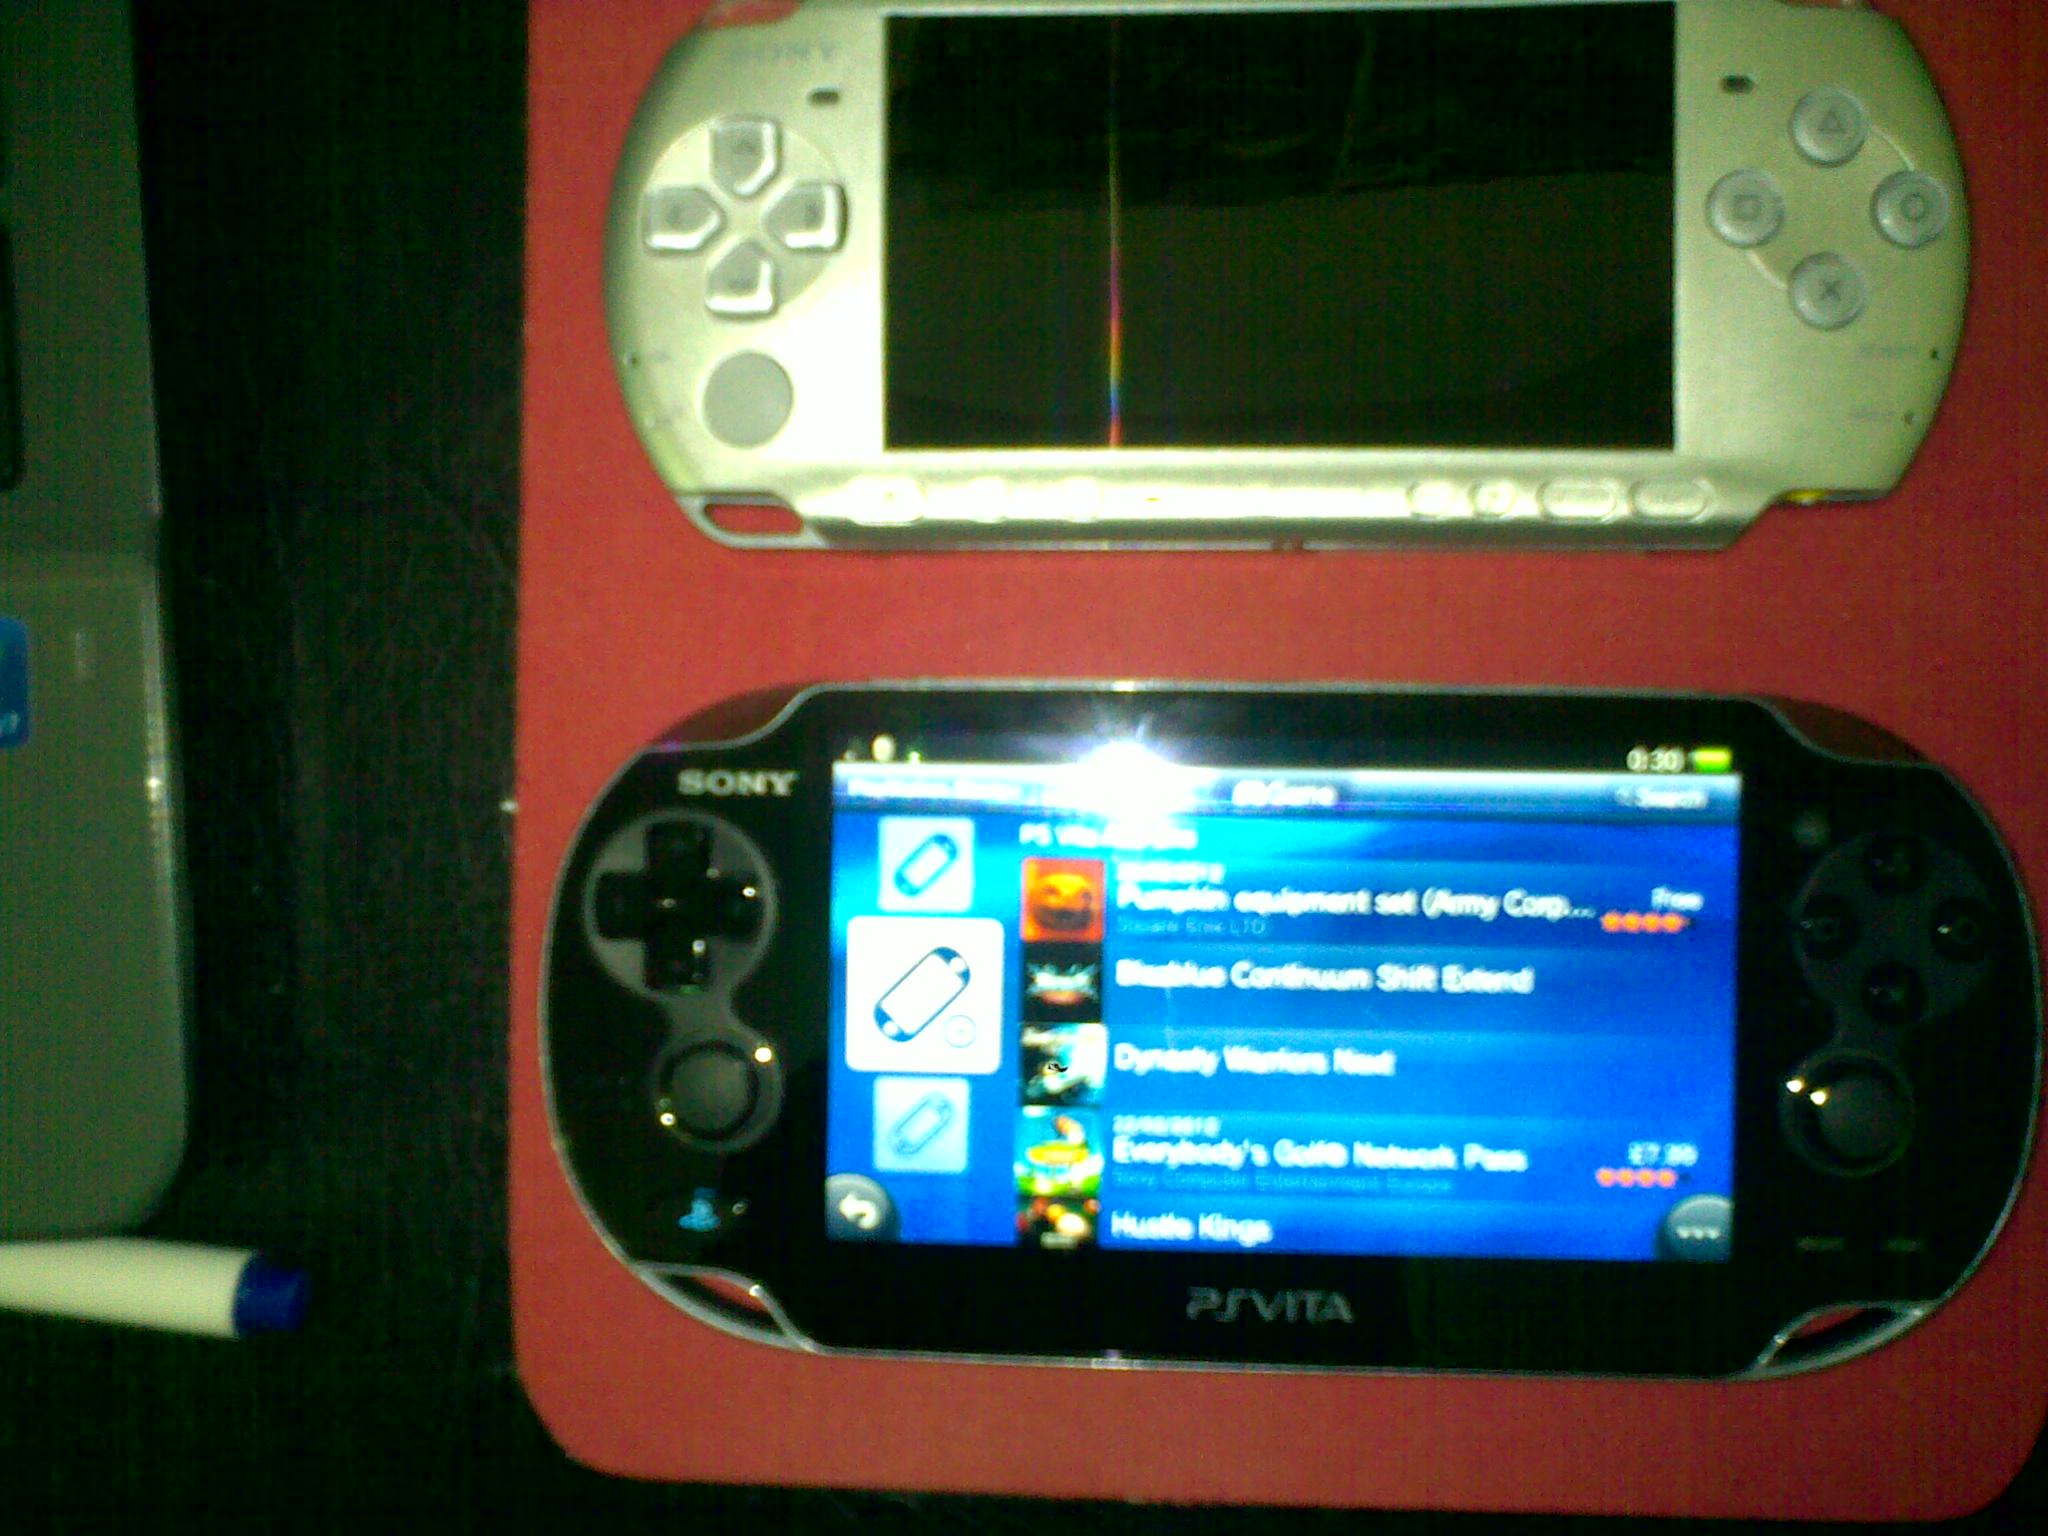 Playstation Vita Vs Psp : Ps vita vs psp from thm hosted by neoseeker